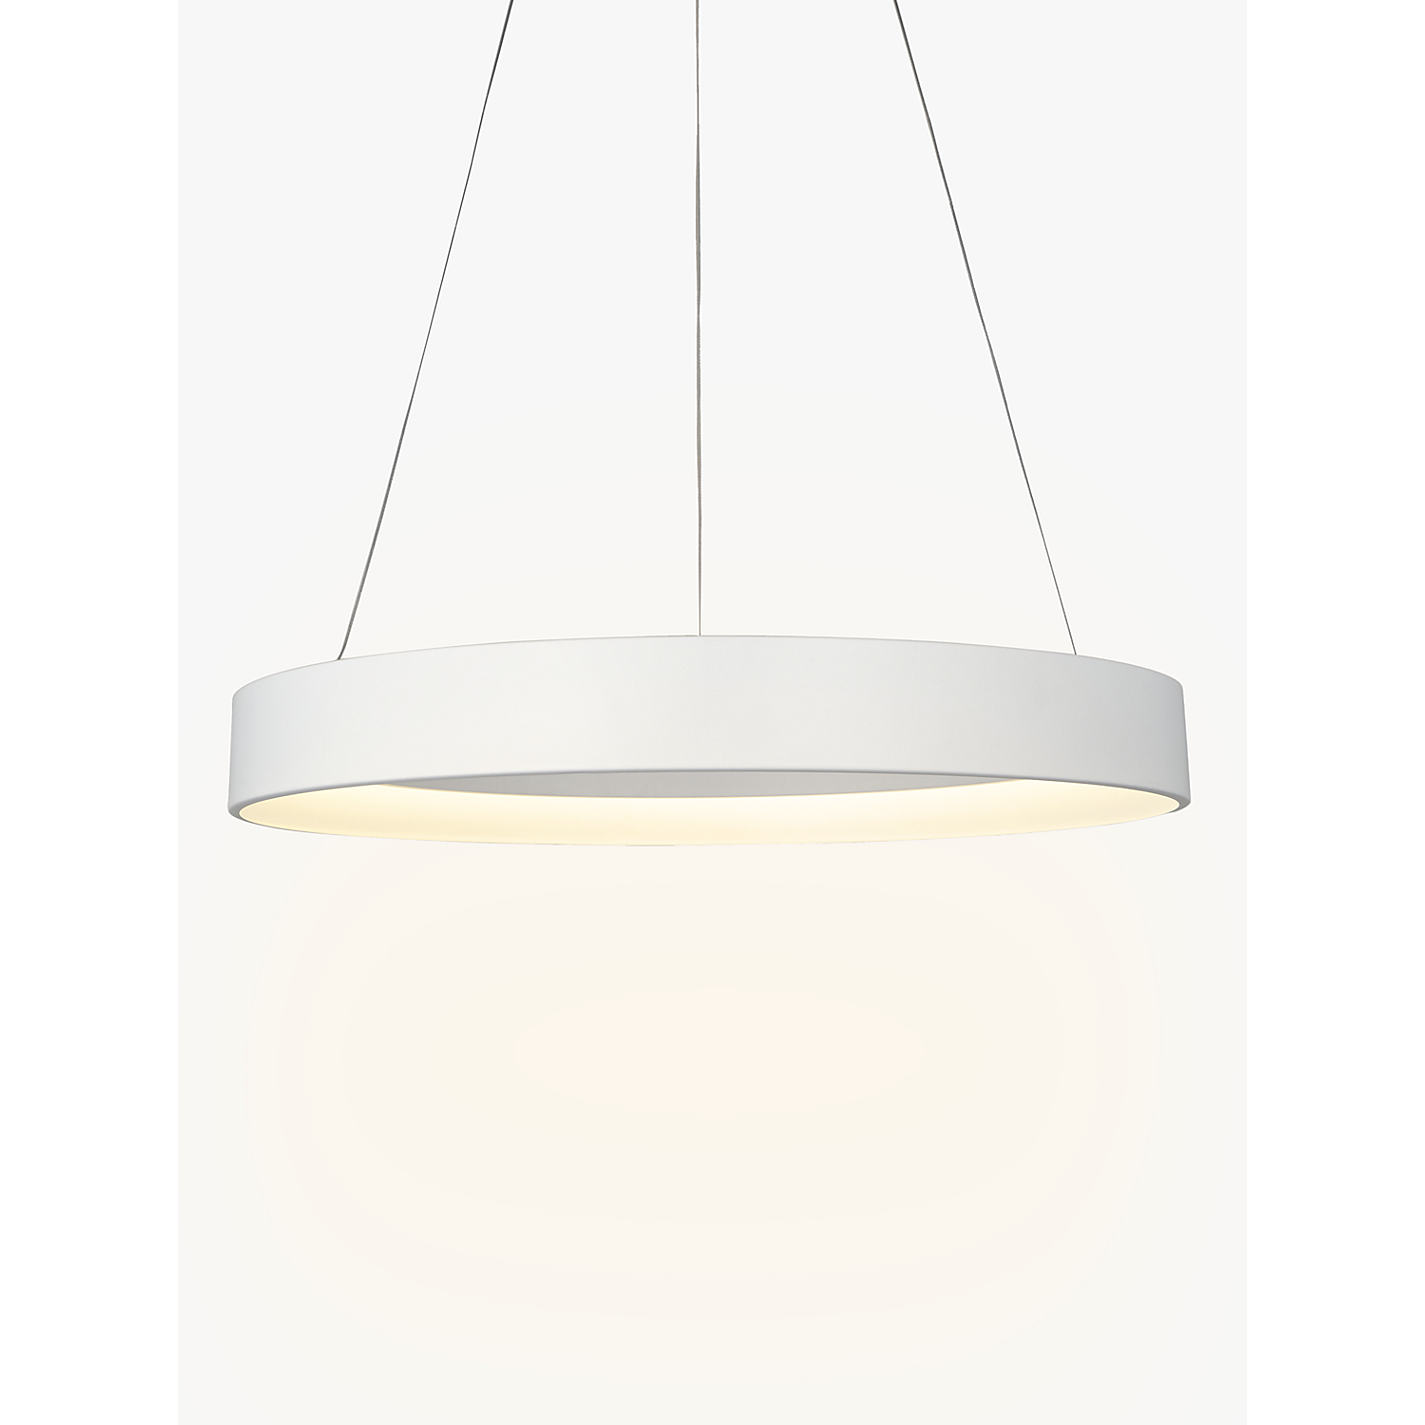 Ceiling lights uk john lewis lighting ideas for Kitchen lighting ideas john lewis